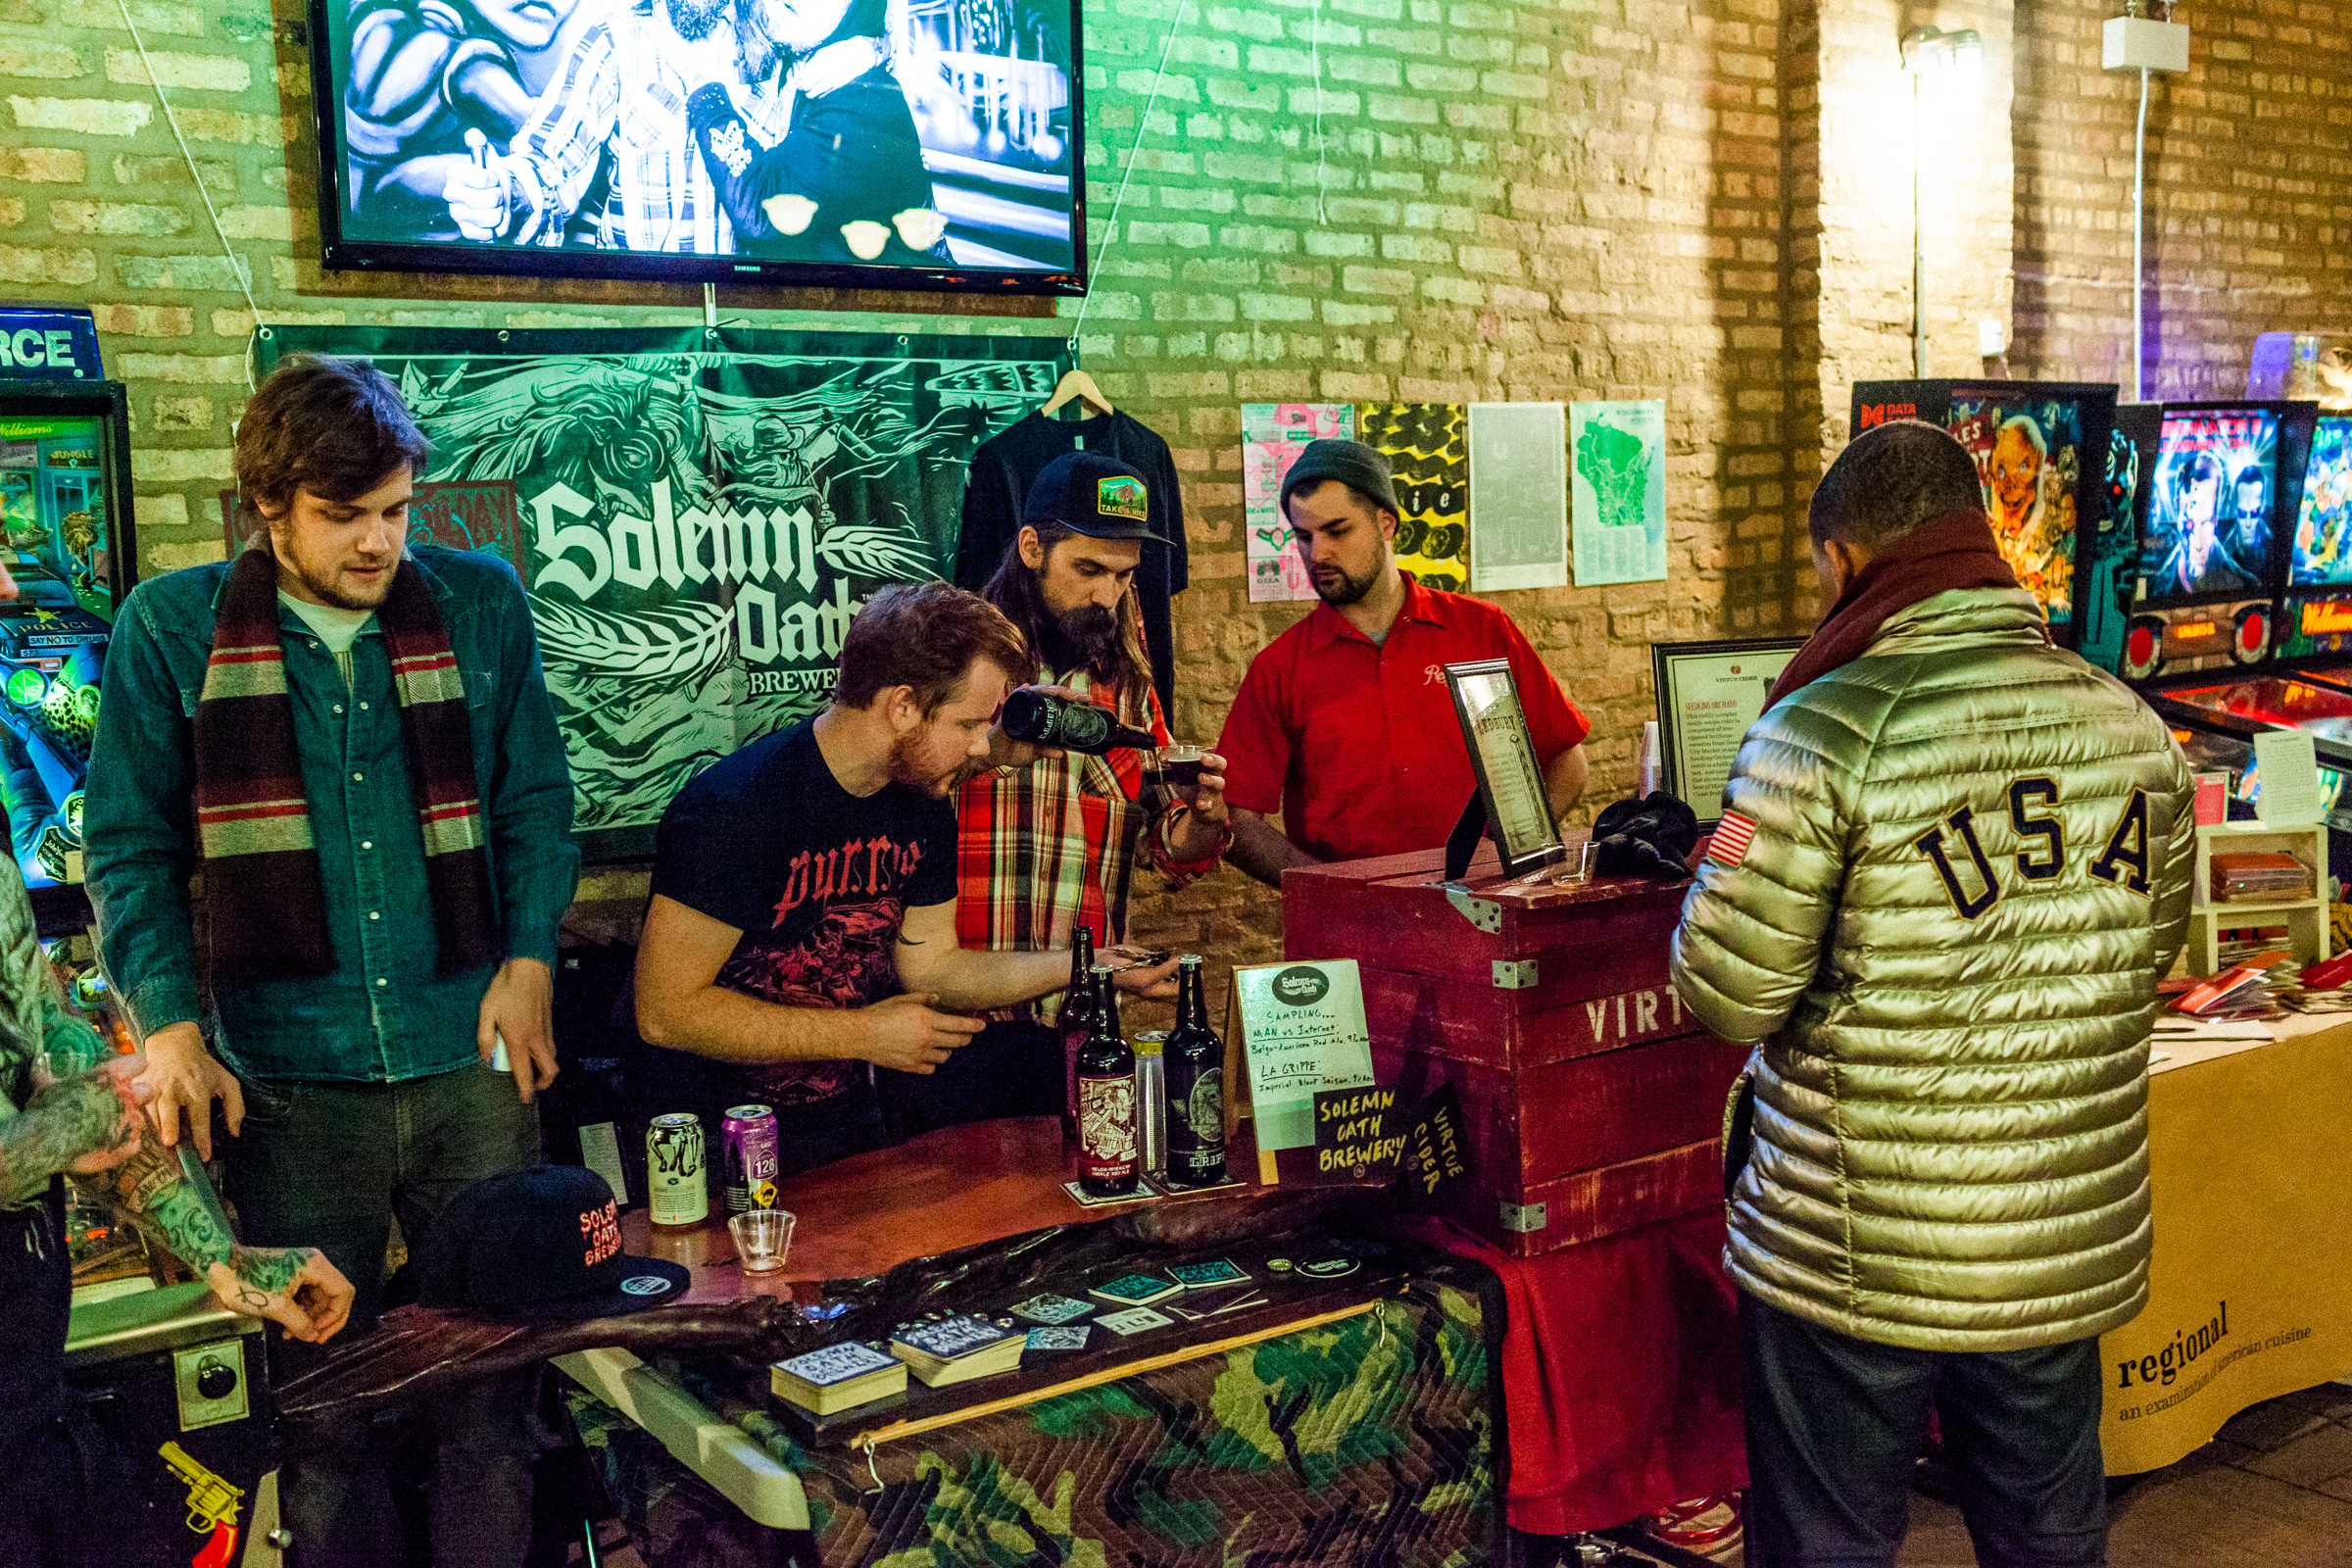 The Sauced Market celebrates its second anniversary on Tue 11/15.